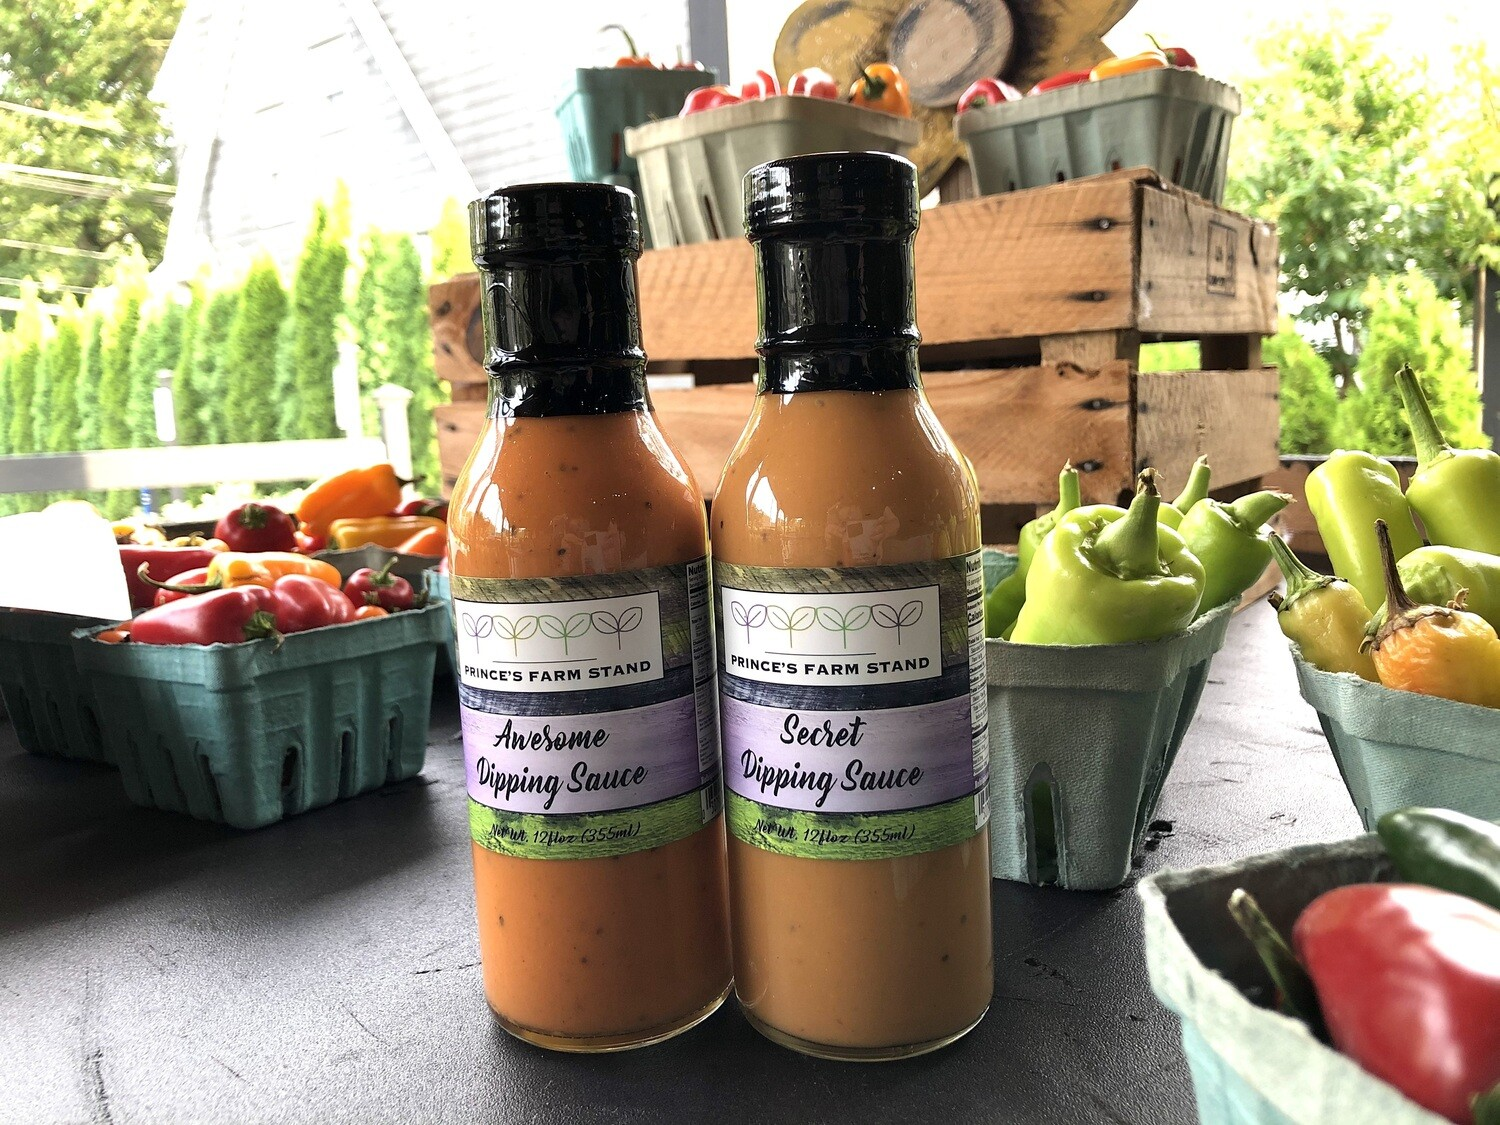 Prince's Farm Stand Dipping Sauces (Assorted Varieties)